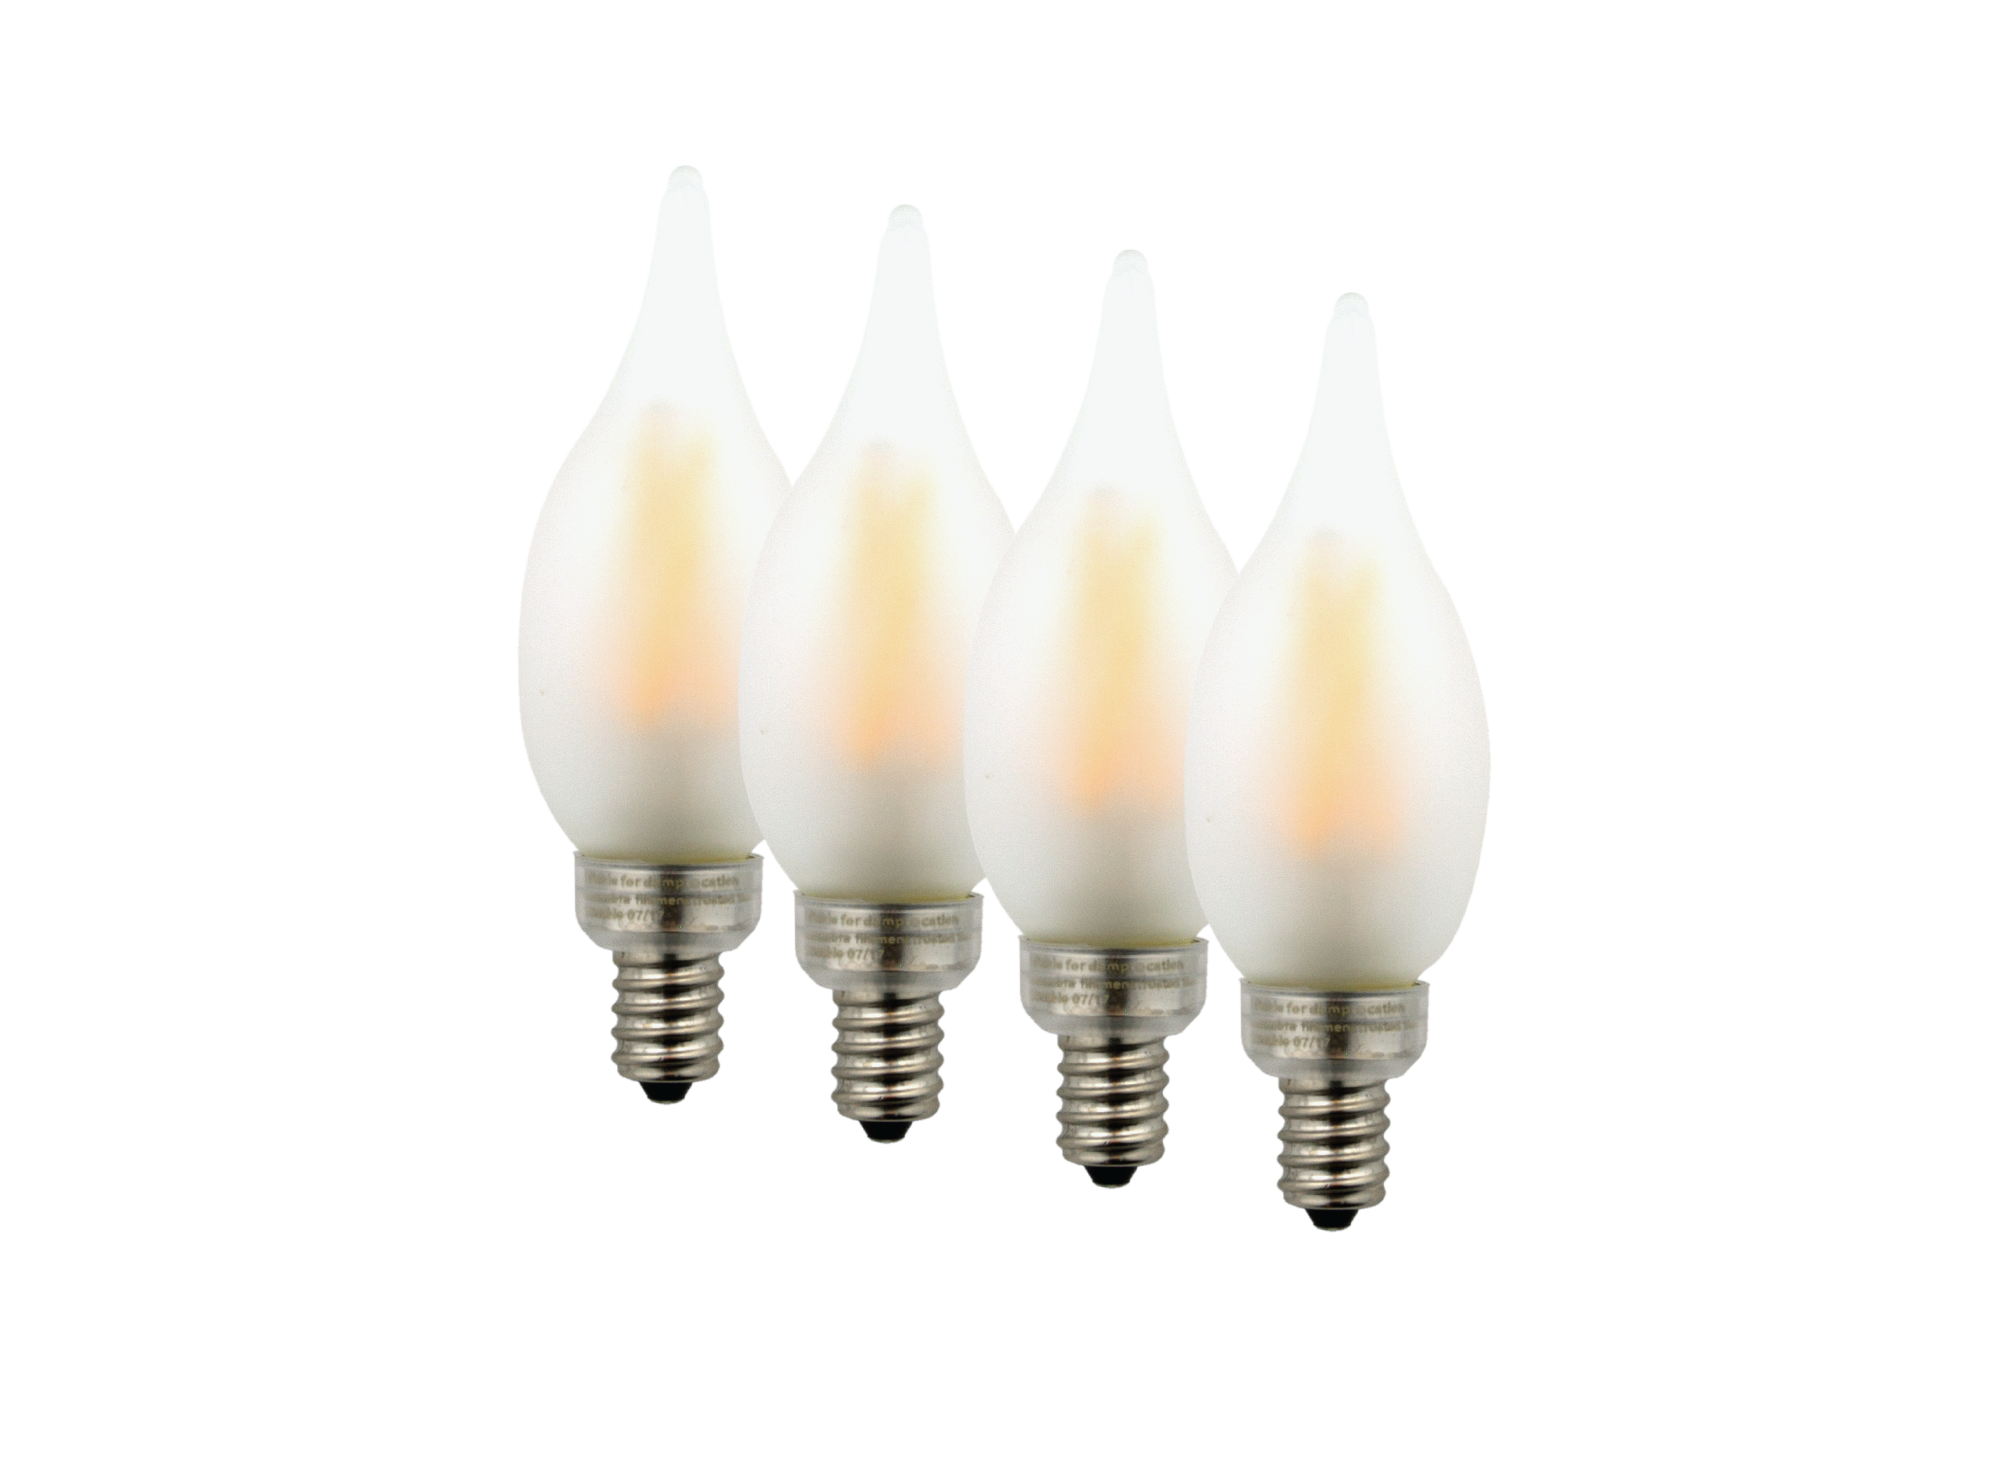 Led candelabra style filament frosted glass light bulb 40w truth led frosted glass candelabra flame tip design led light bulb with exposed filament 35 arubaitofo Image collections